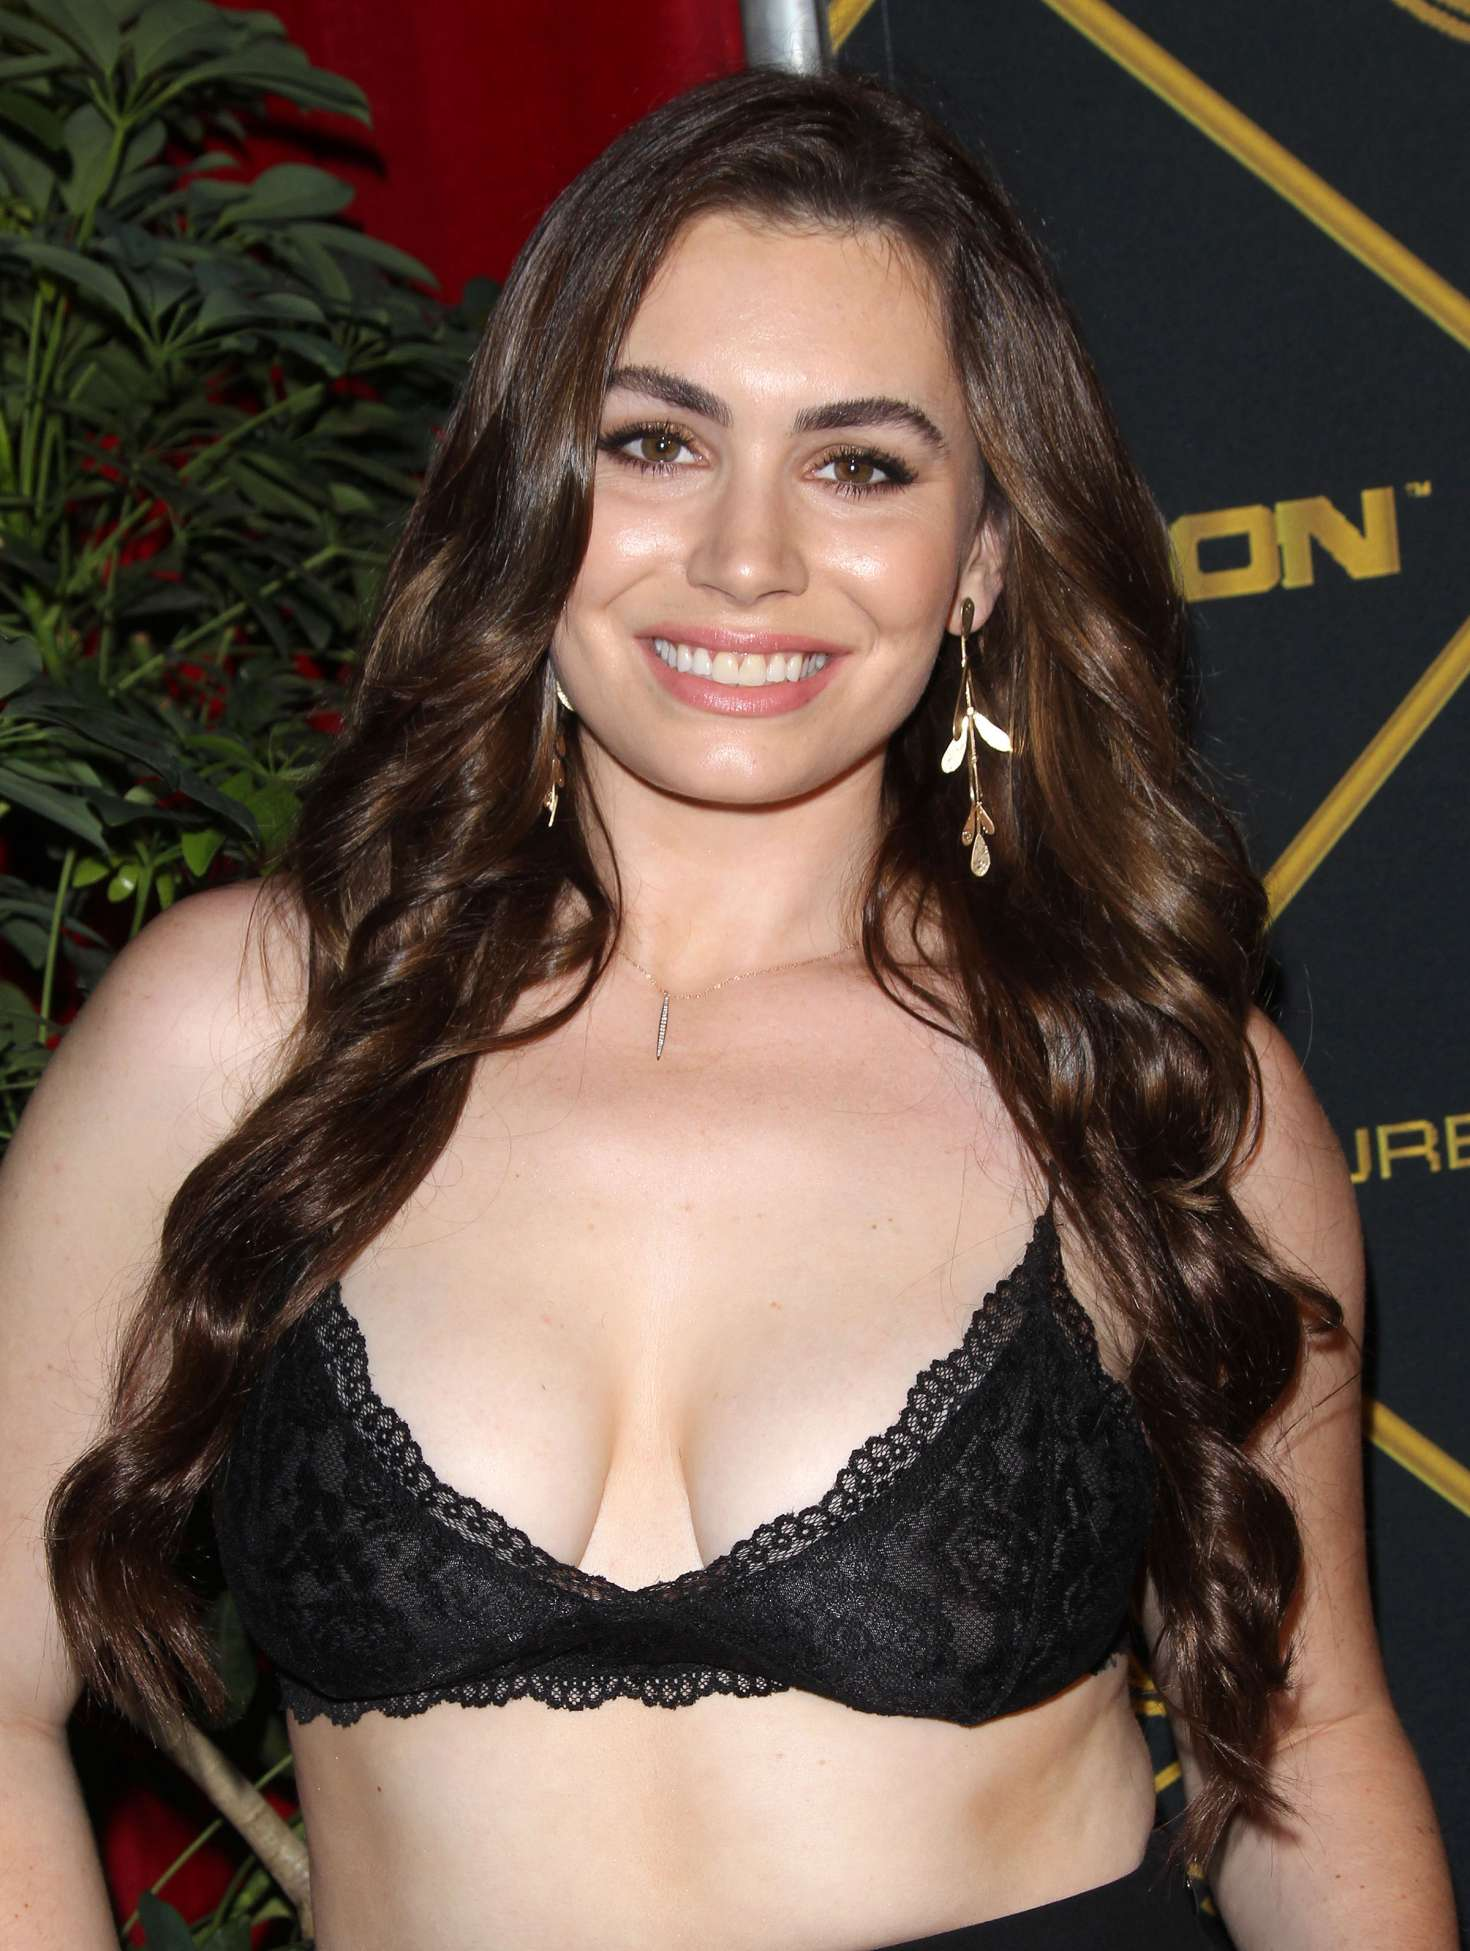 Hot Sophie Simmons nudes (98 pics), Topless